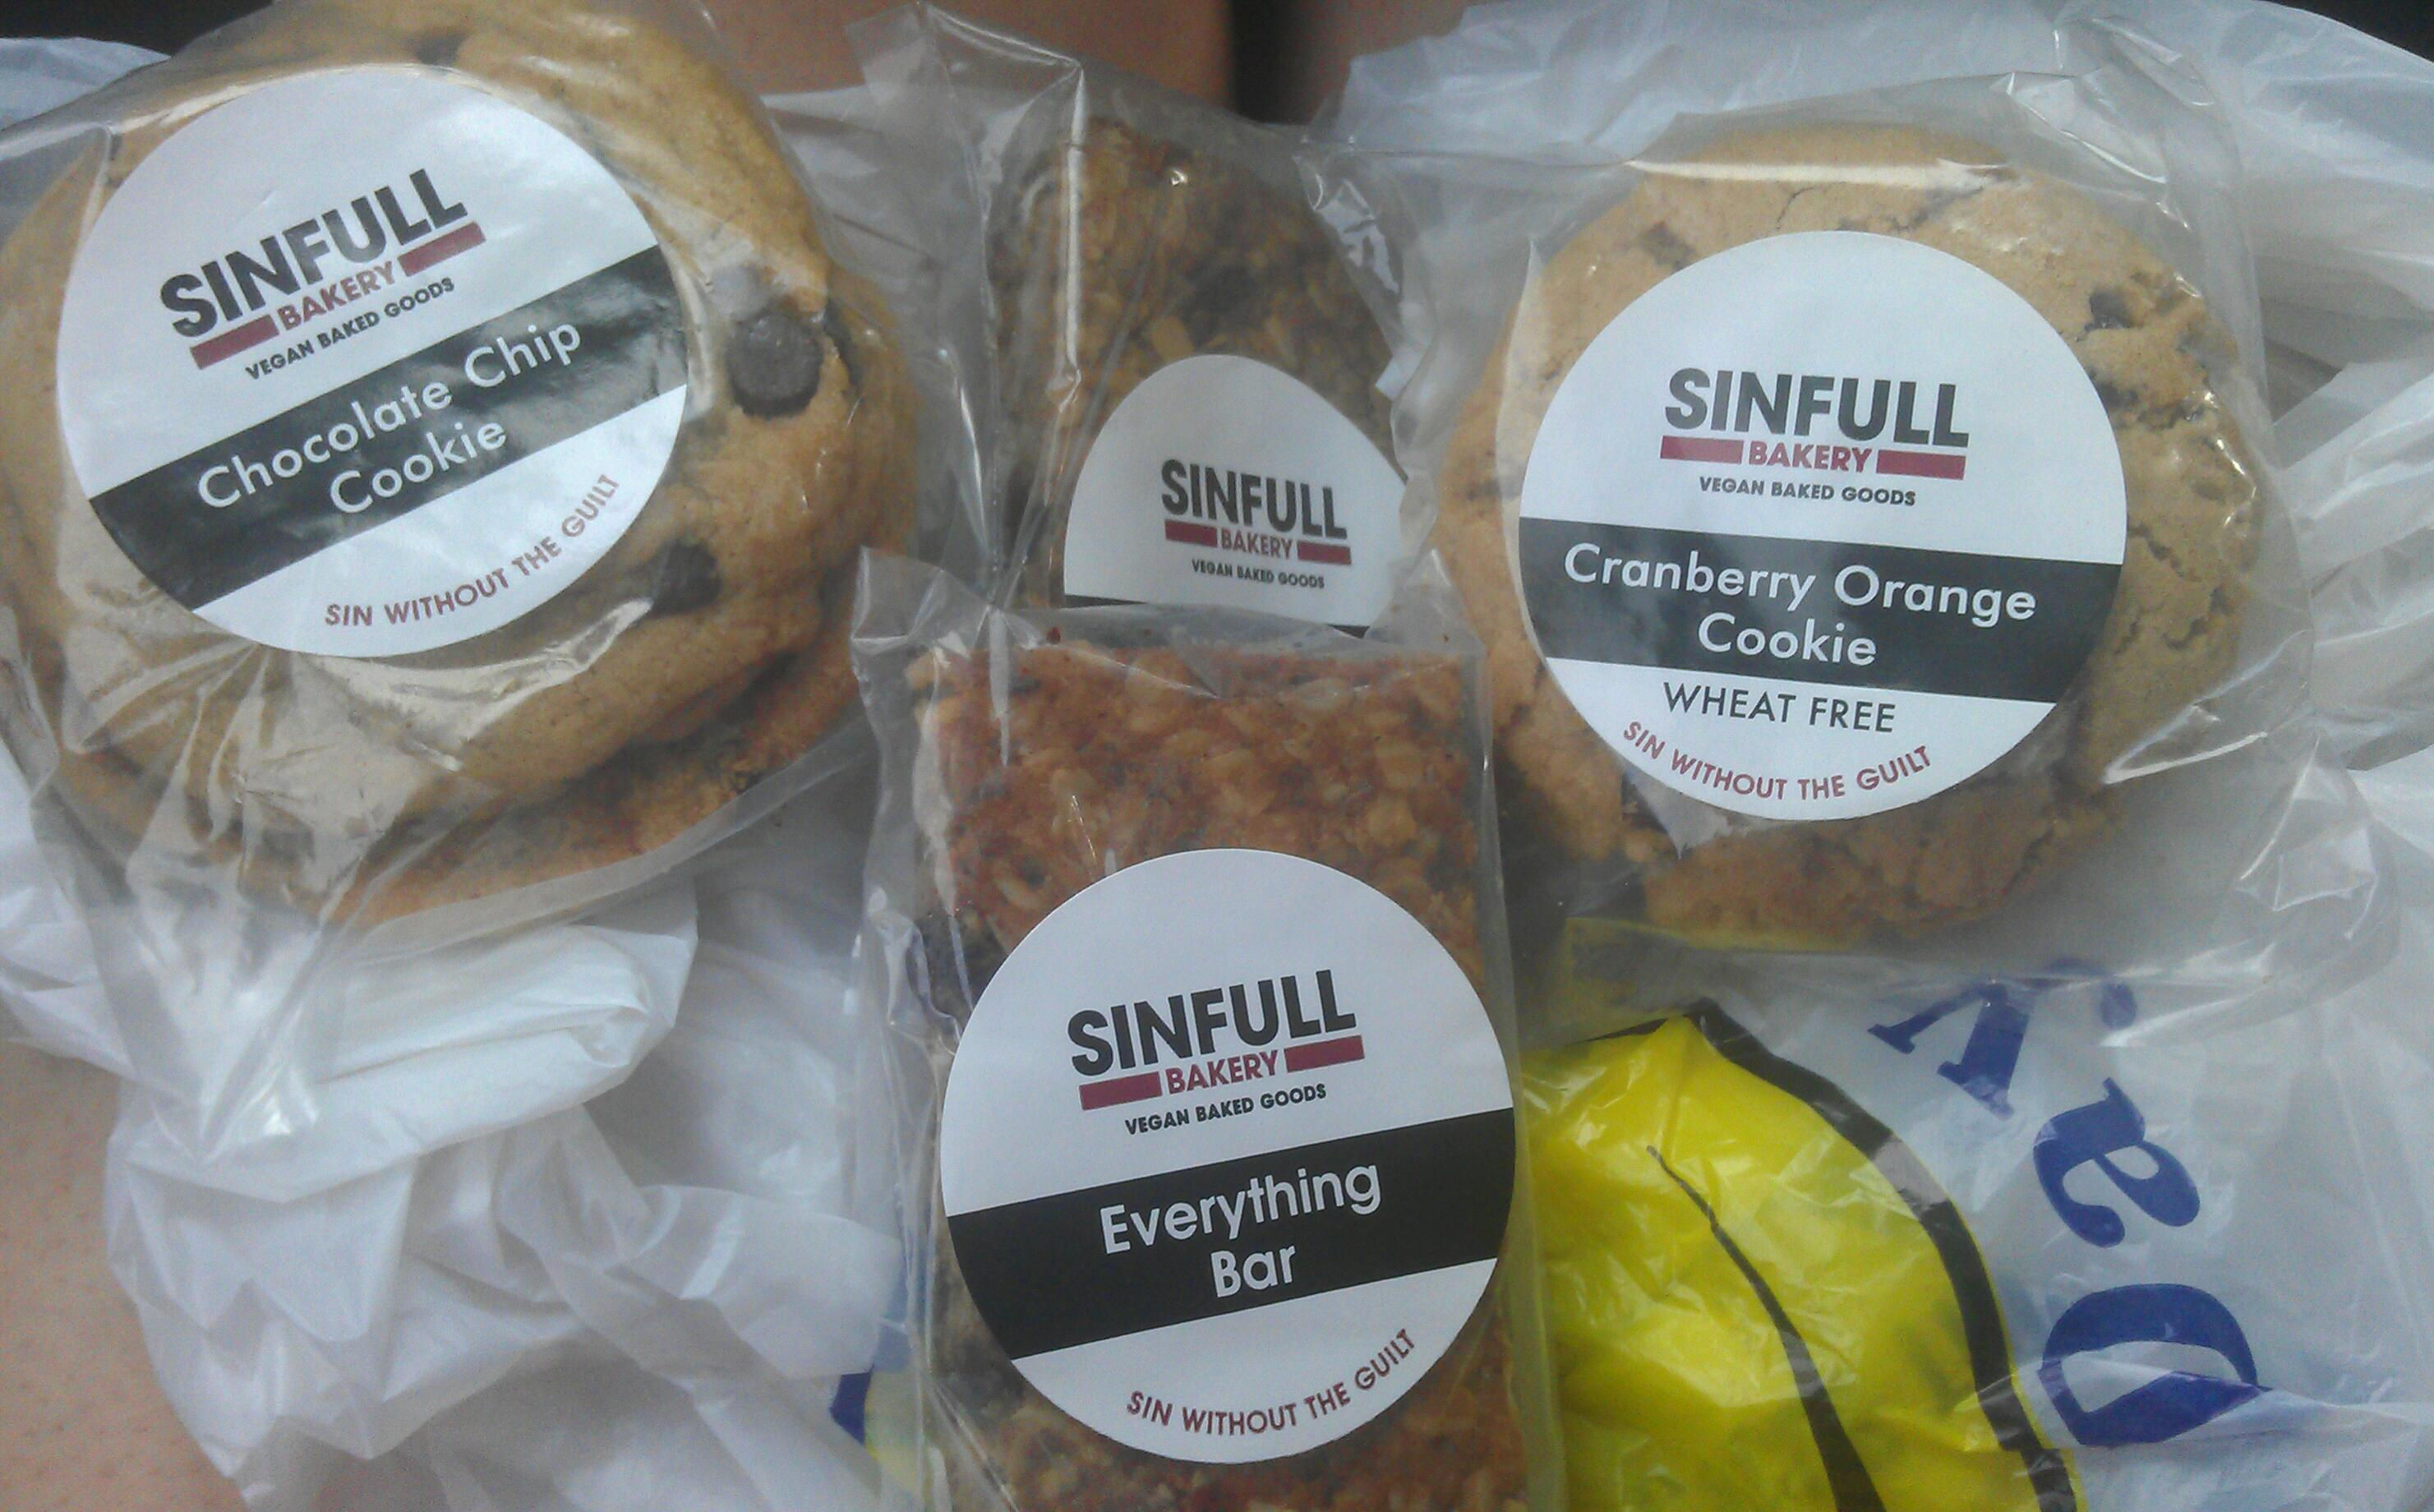 Sinfull Bakery – GET FULL!